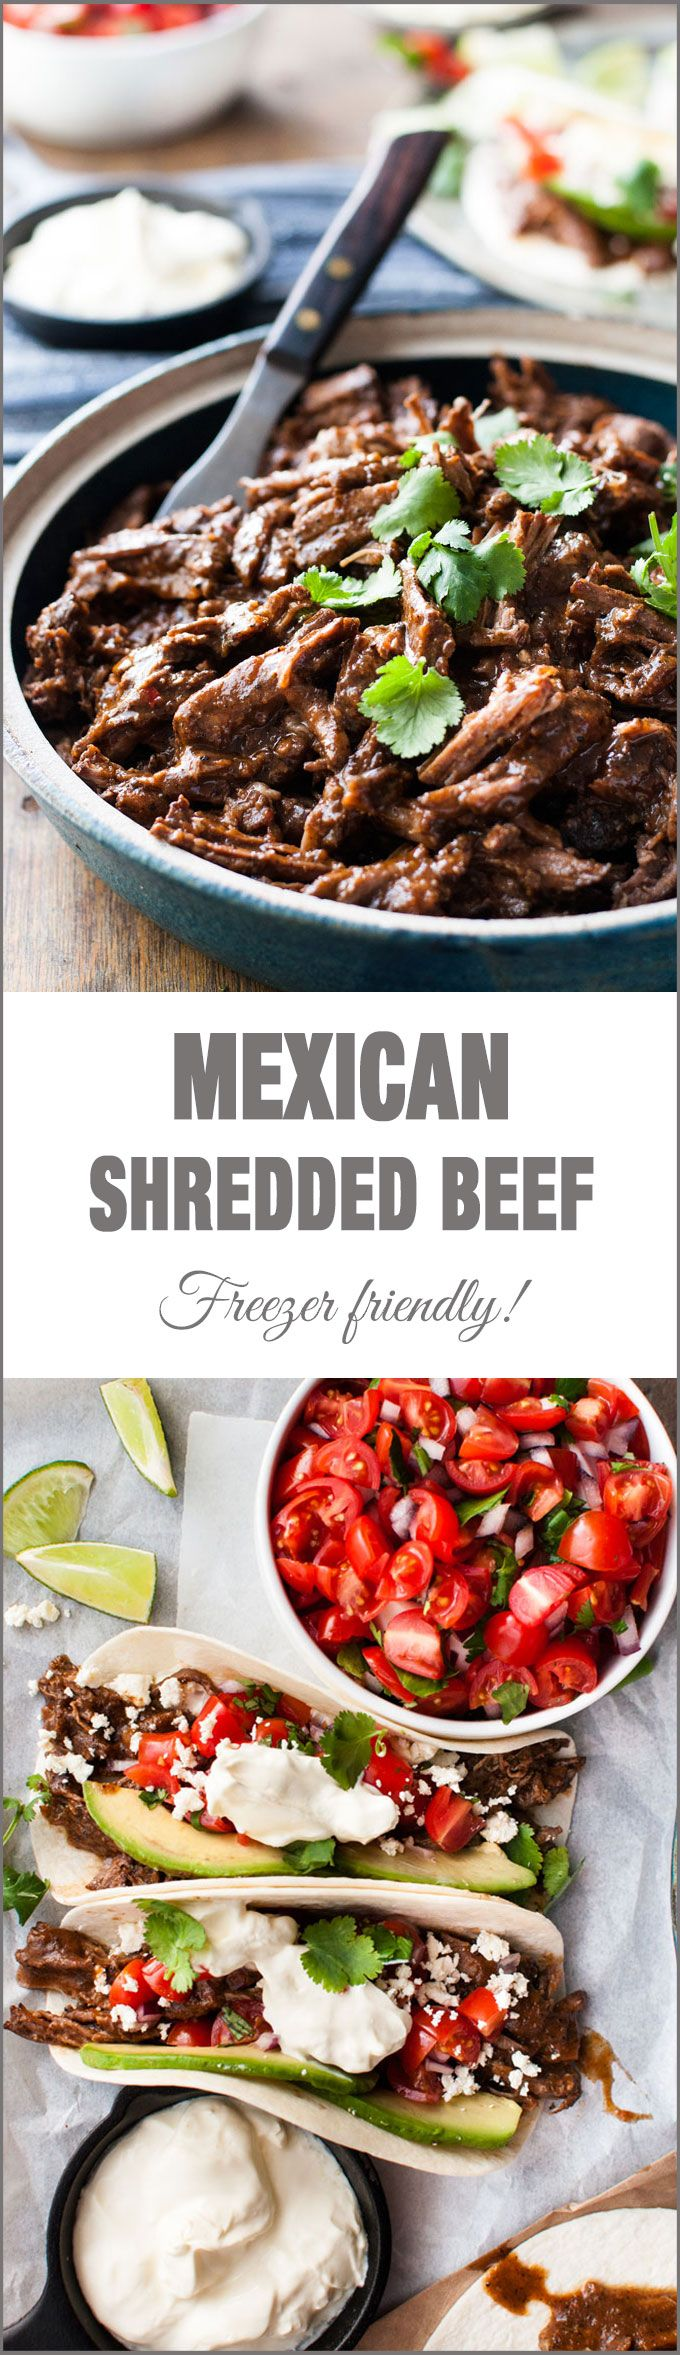 Mexican Shredded Beef - easy to make, in the slow cooker, on the stove or even in the oven! | https://lomejordelaweb.es/